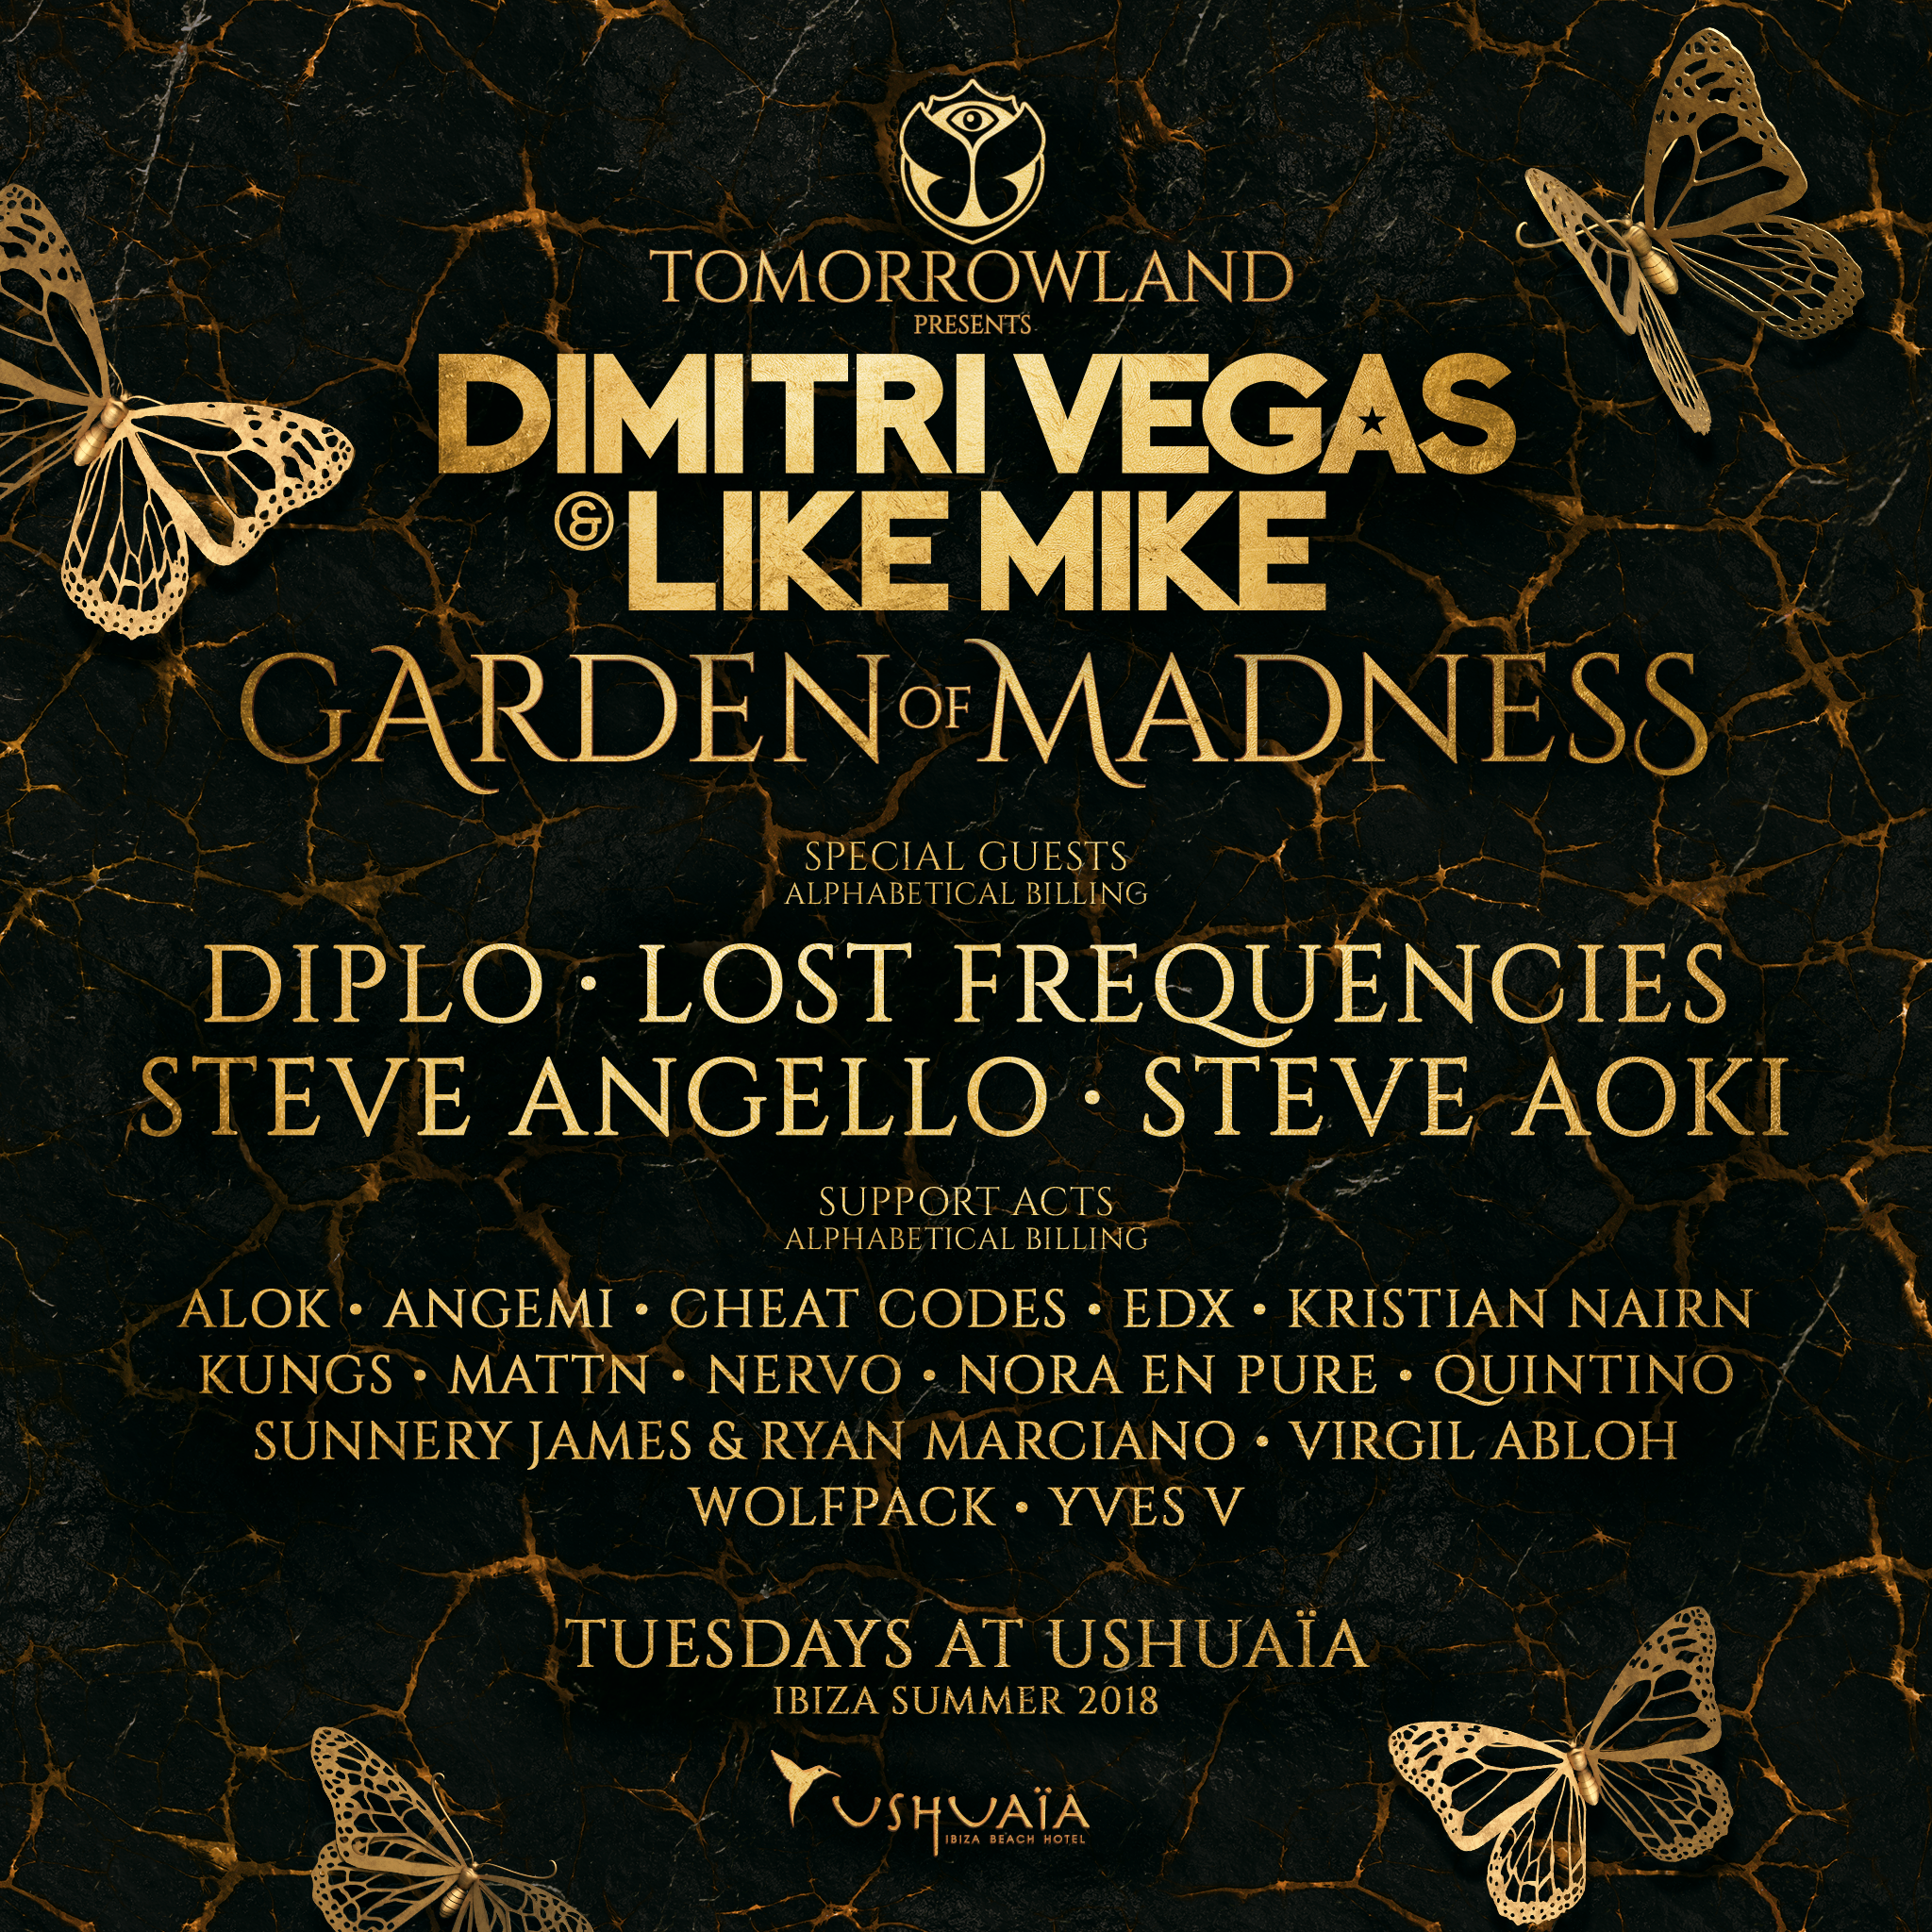 Tomorrowland and Dimitri Vegas & Like Mike announce the lineup for Garden of Madness at Ushuaïa Ibiza